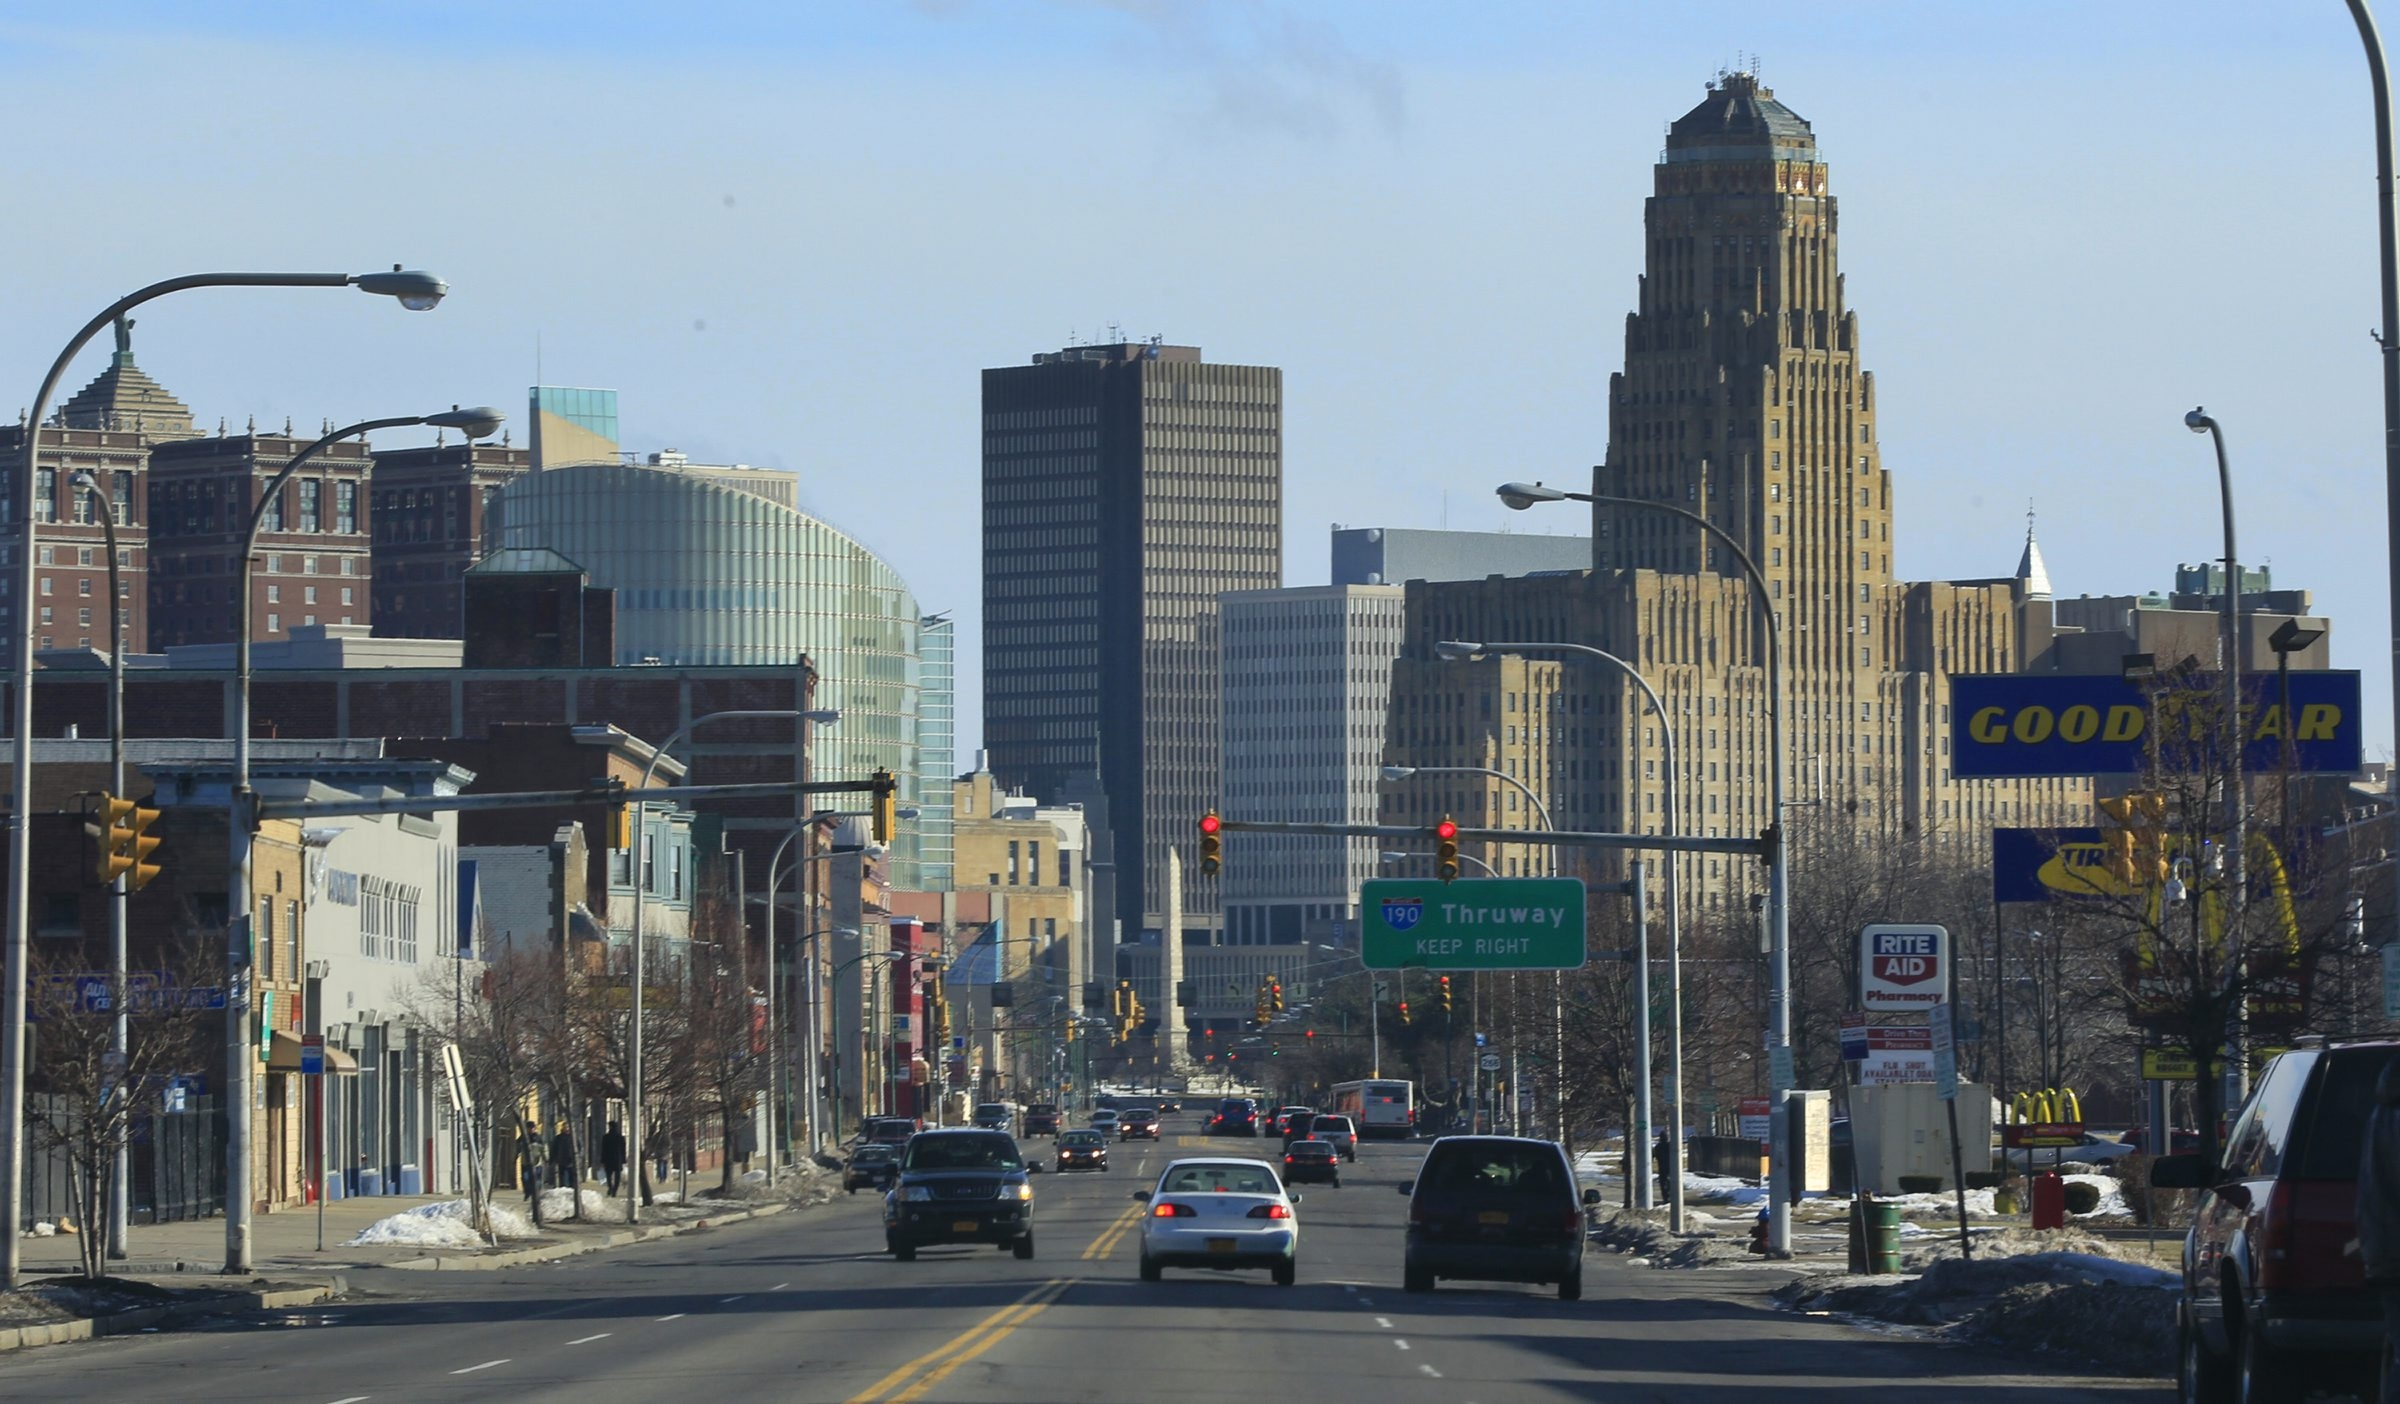 A general view of the Buffalo skyline looking down Niagara Street. New Census figures show that an influx of 2,499 immigrants to the Buffalo area outpaced the 1,937 American citizens who moved away.